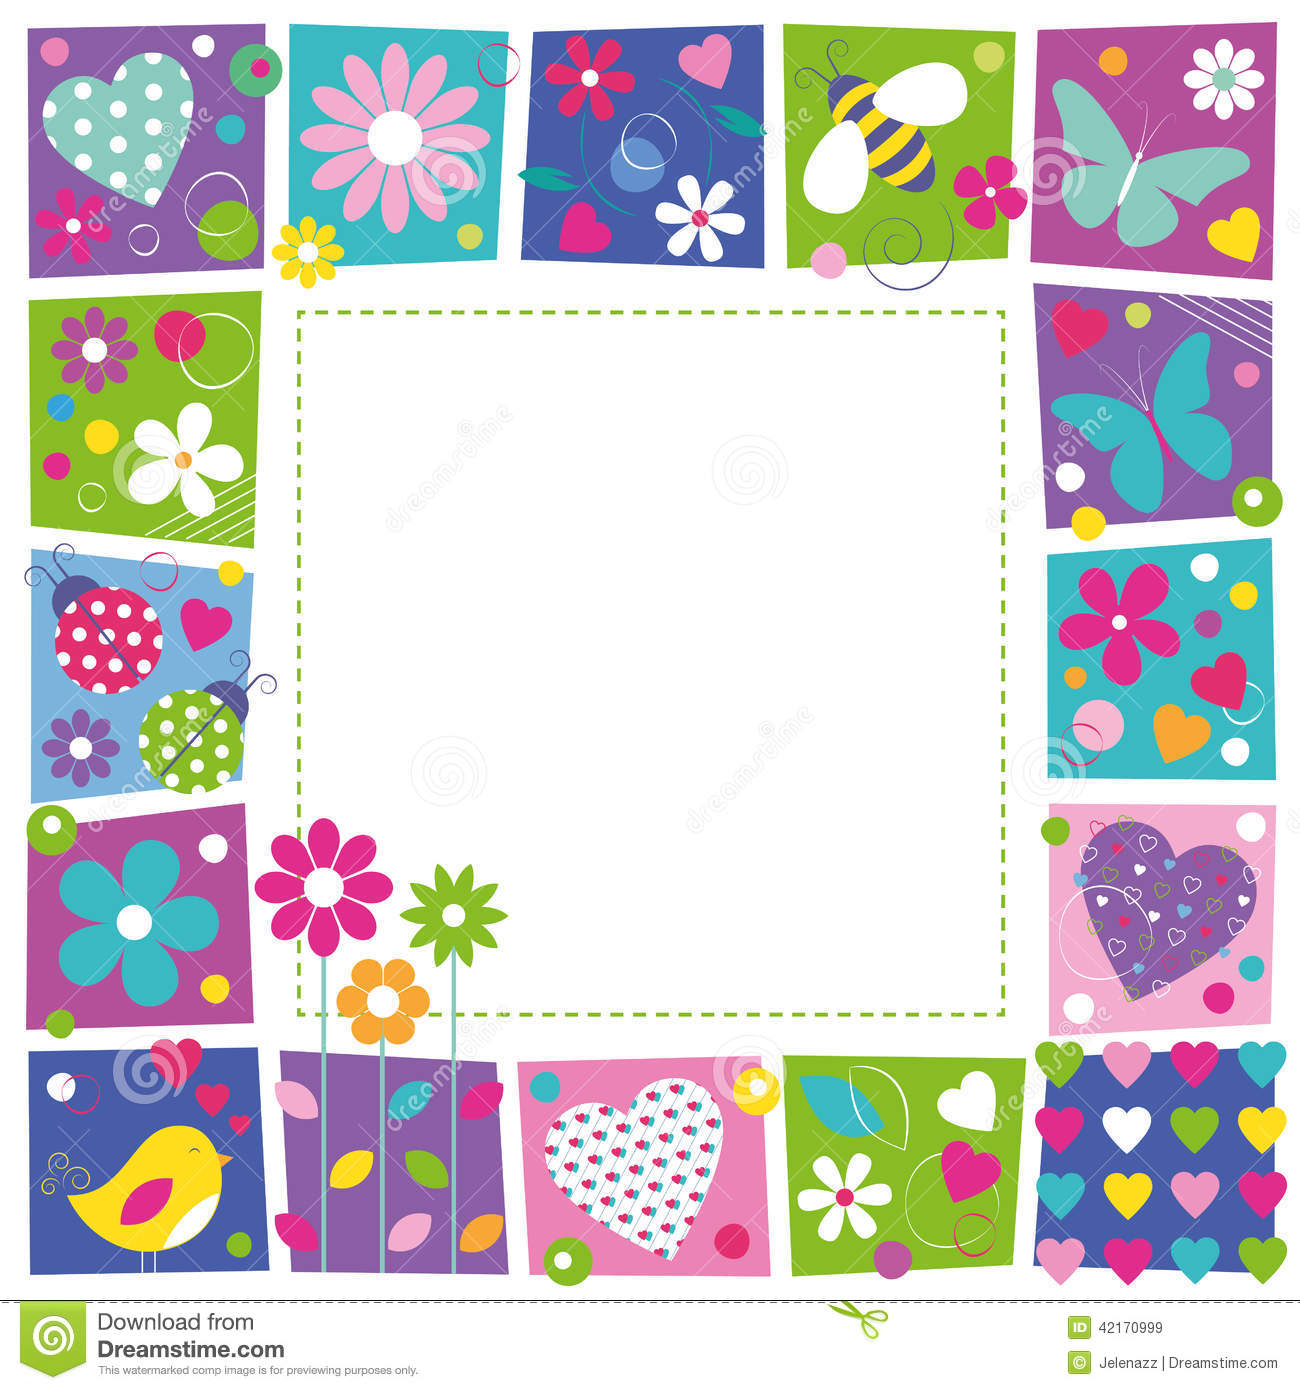 Cute Hearts Flowers And Butterflies Border Stock Vector